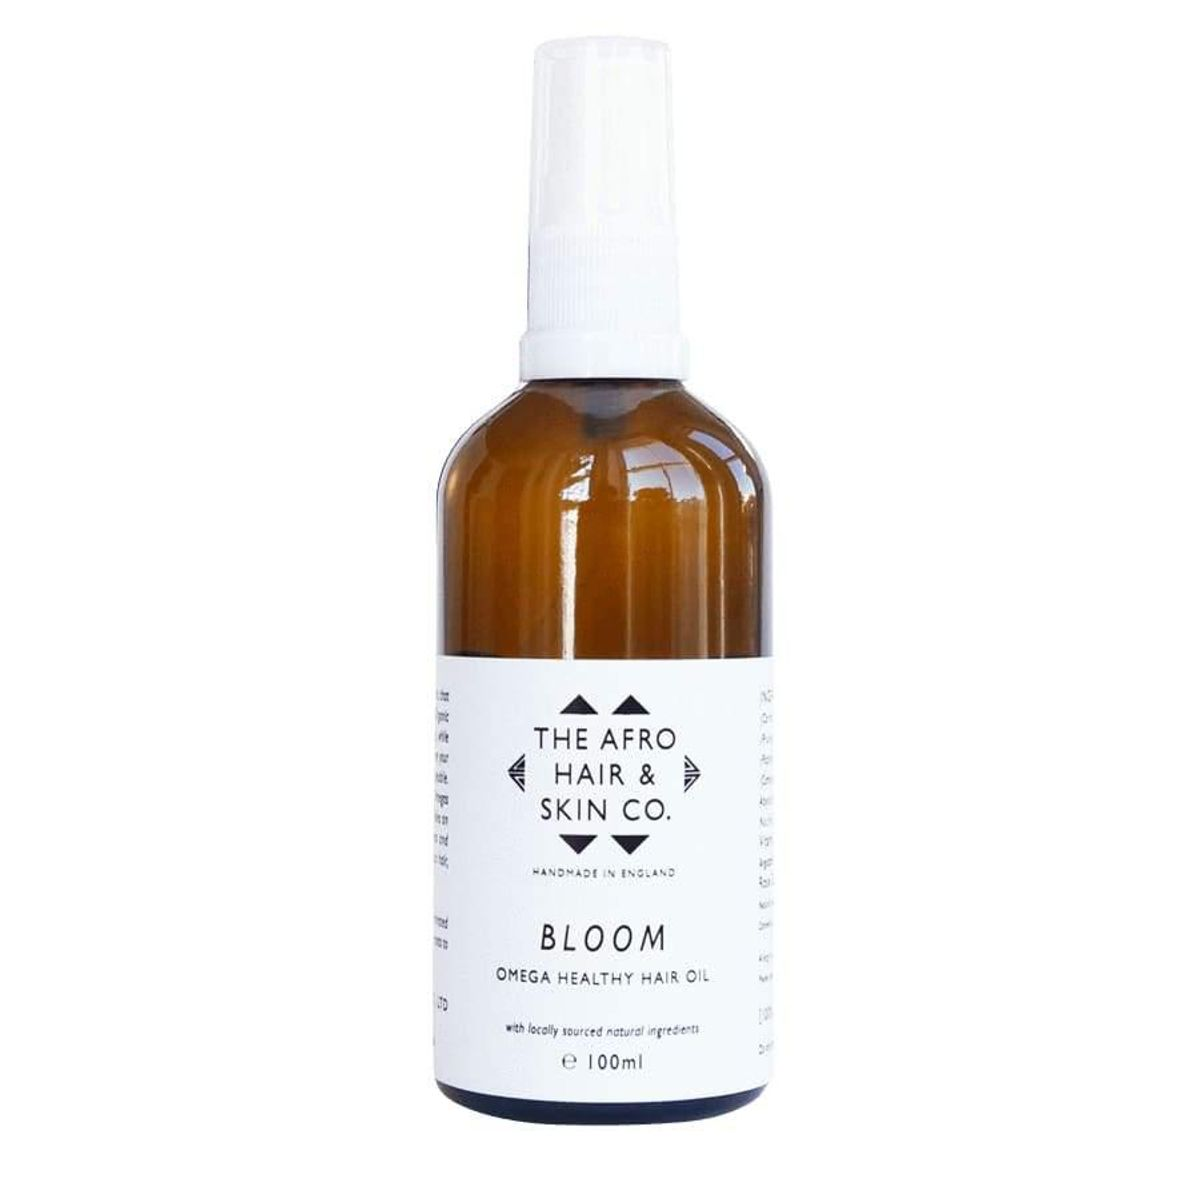 the afro hair and skin company bloom omega healthy hair oil